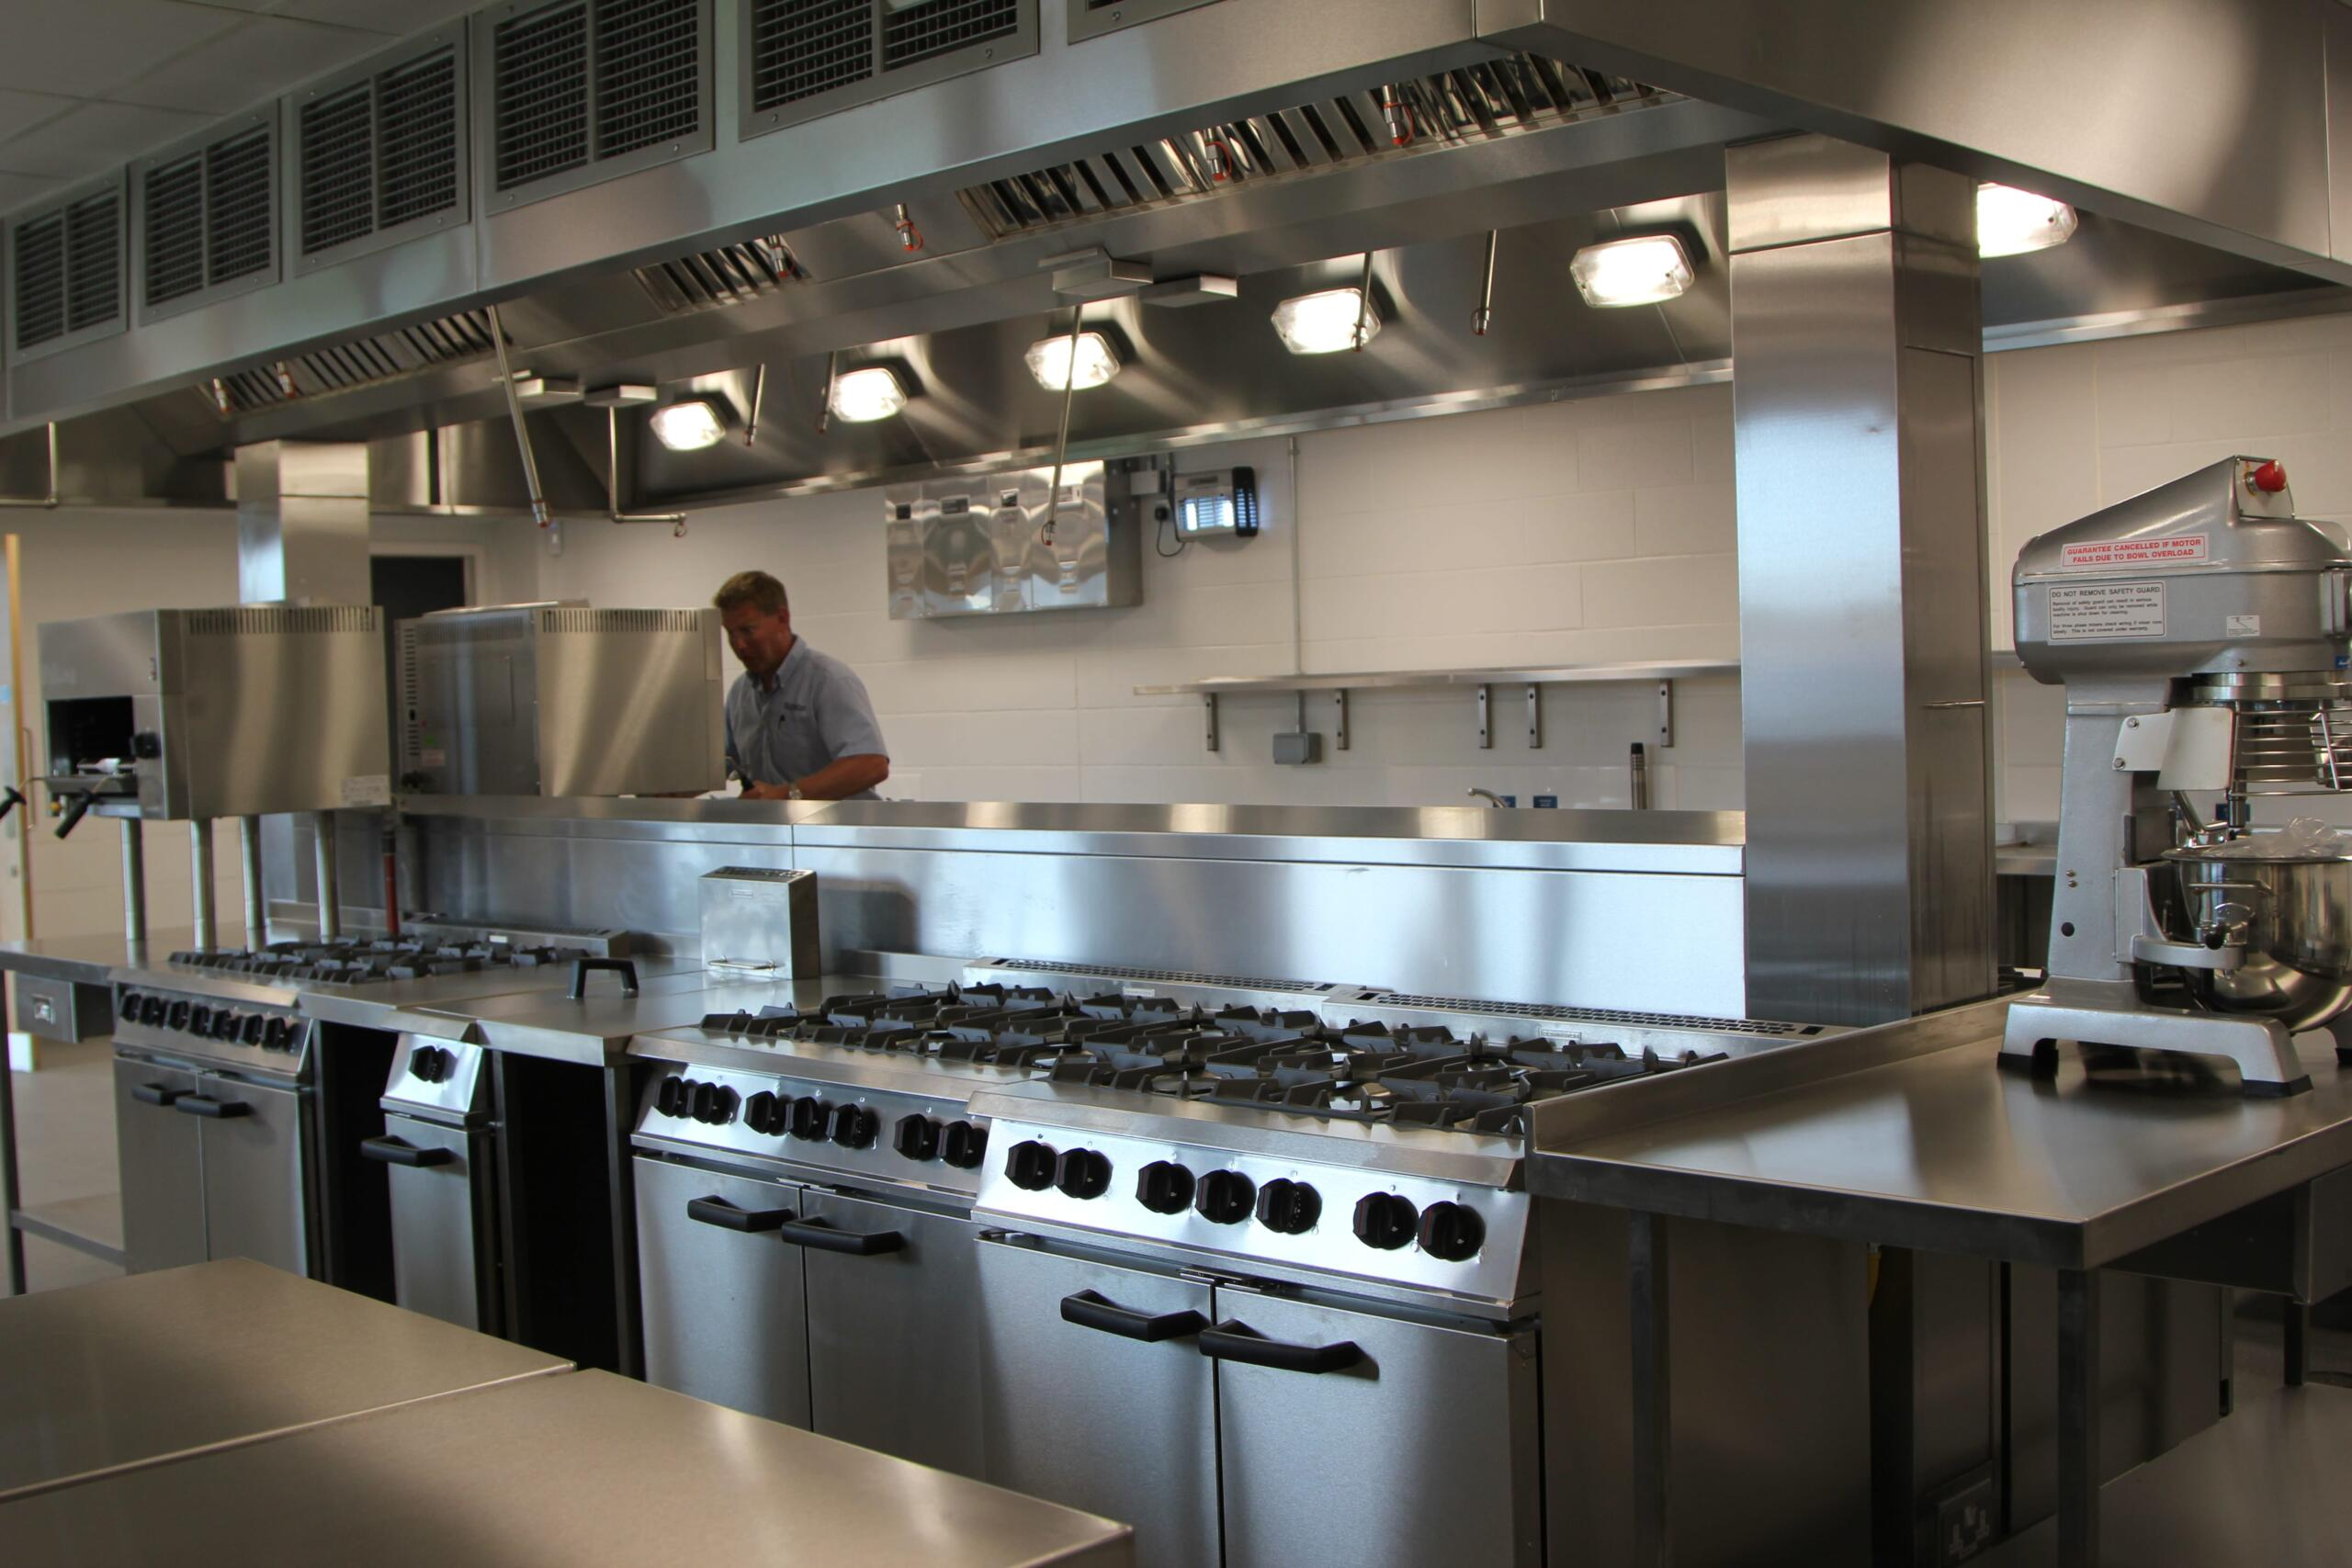 Kitchen Design Qualifications training kitchens archives - spaceuk